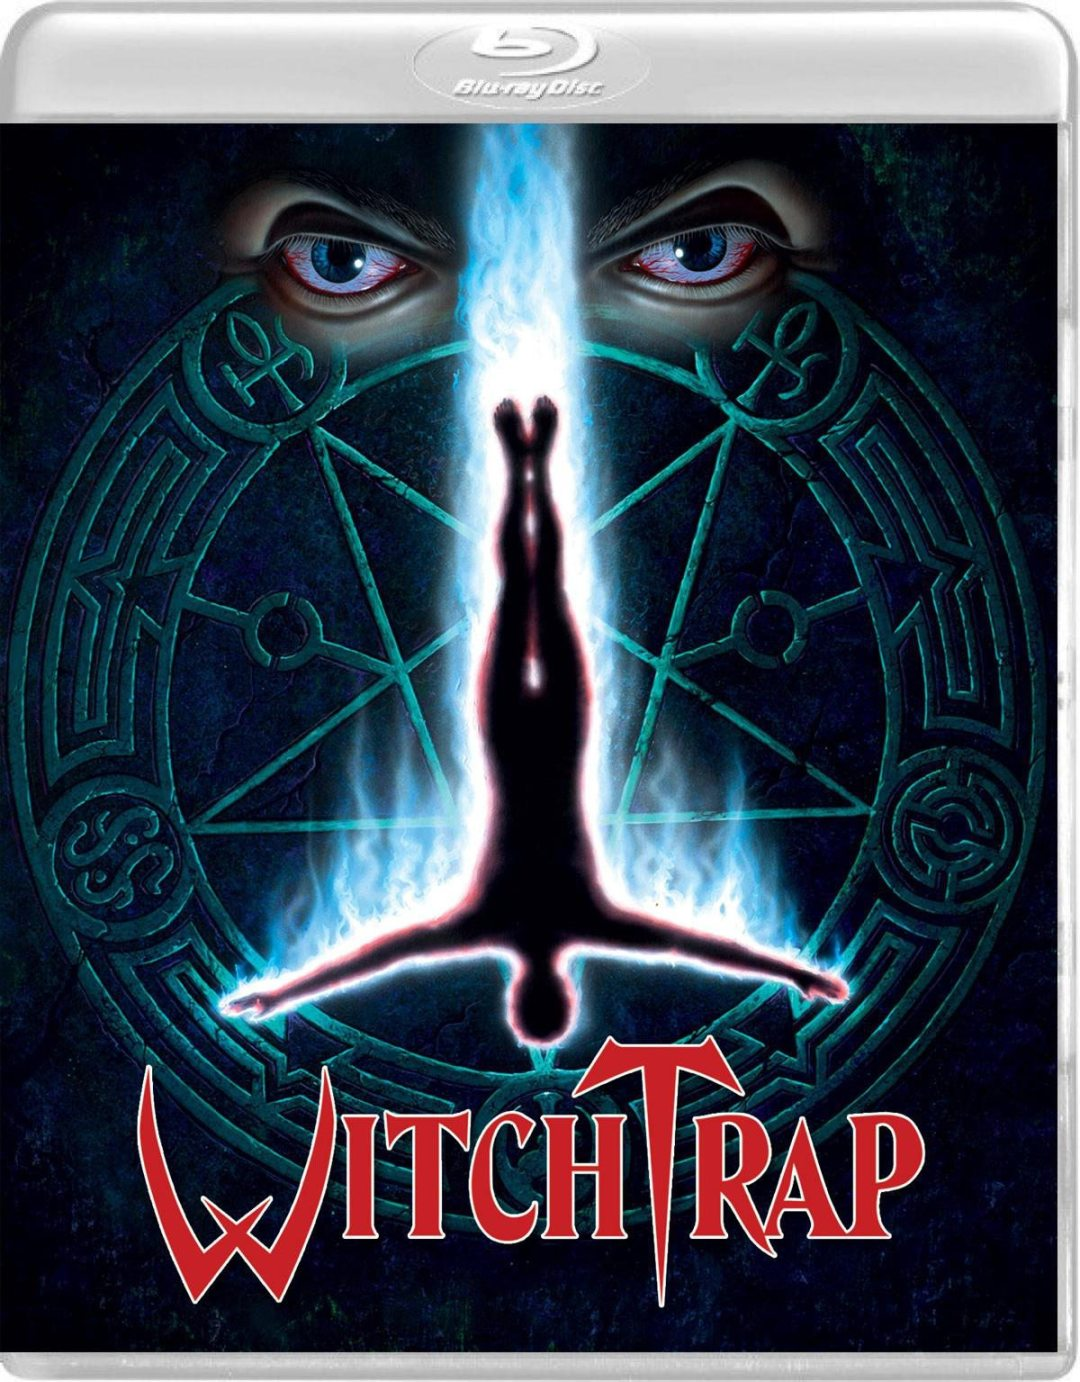 Soon You Can Bring Home A 'Witchtrap'